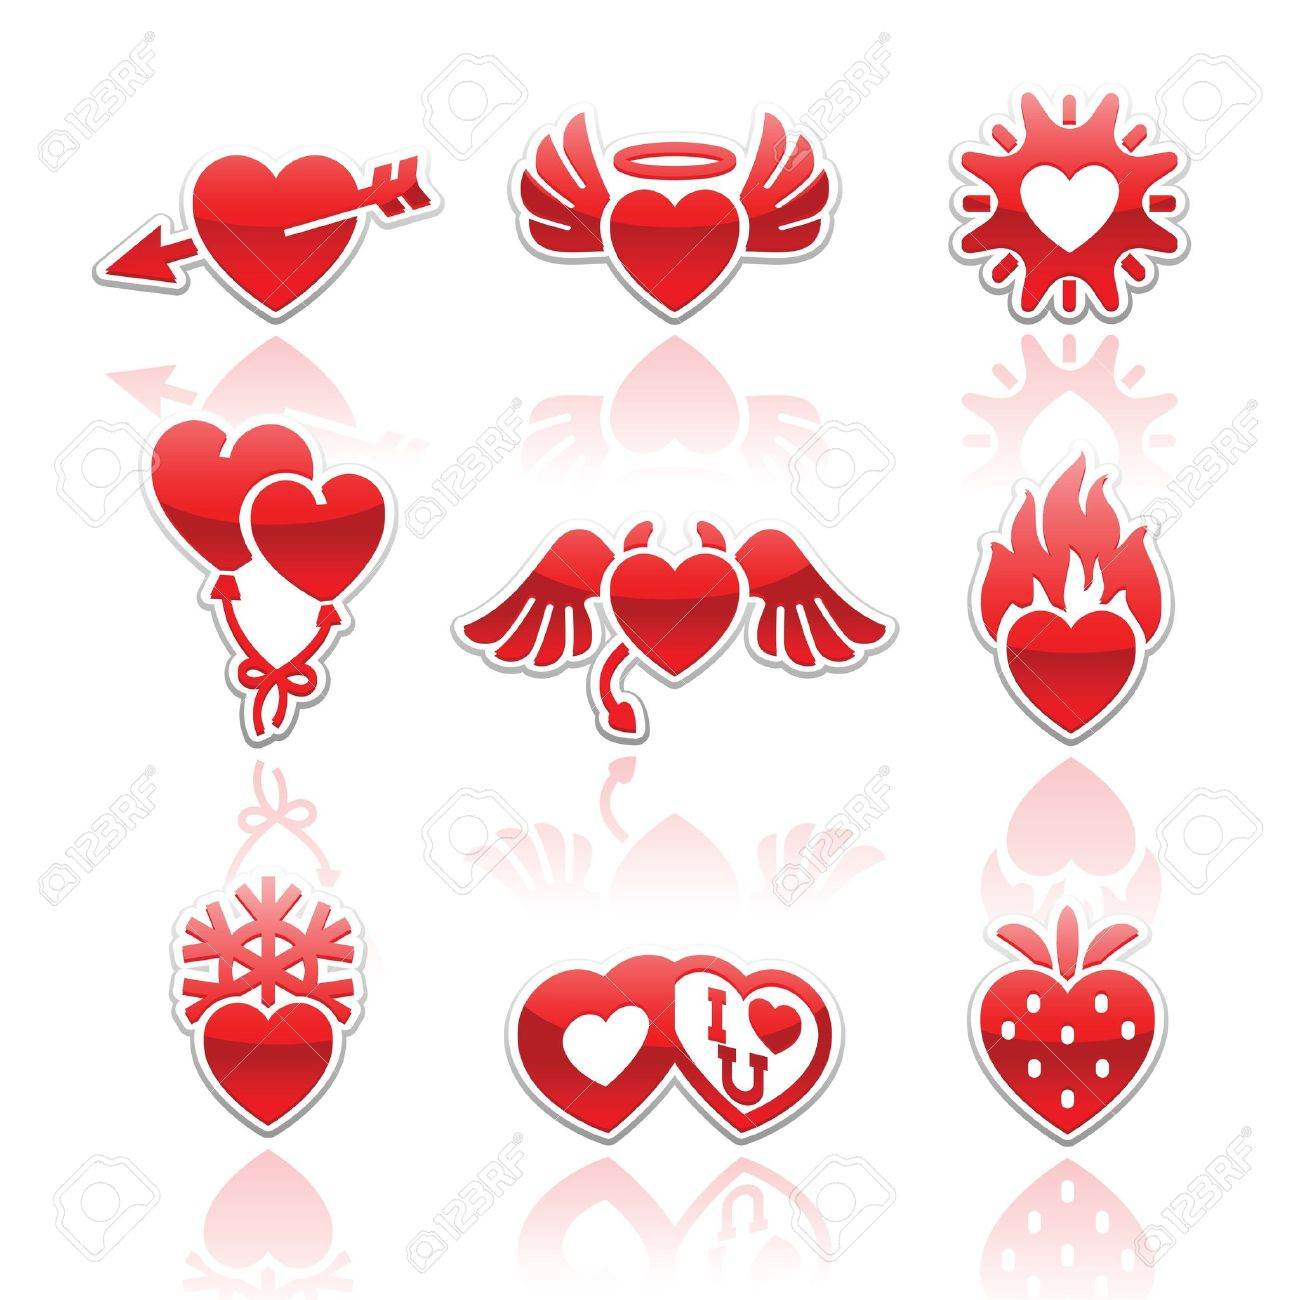 set icons of valentines day red hearts signs stock vector 12178570 - Valentine Signs